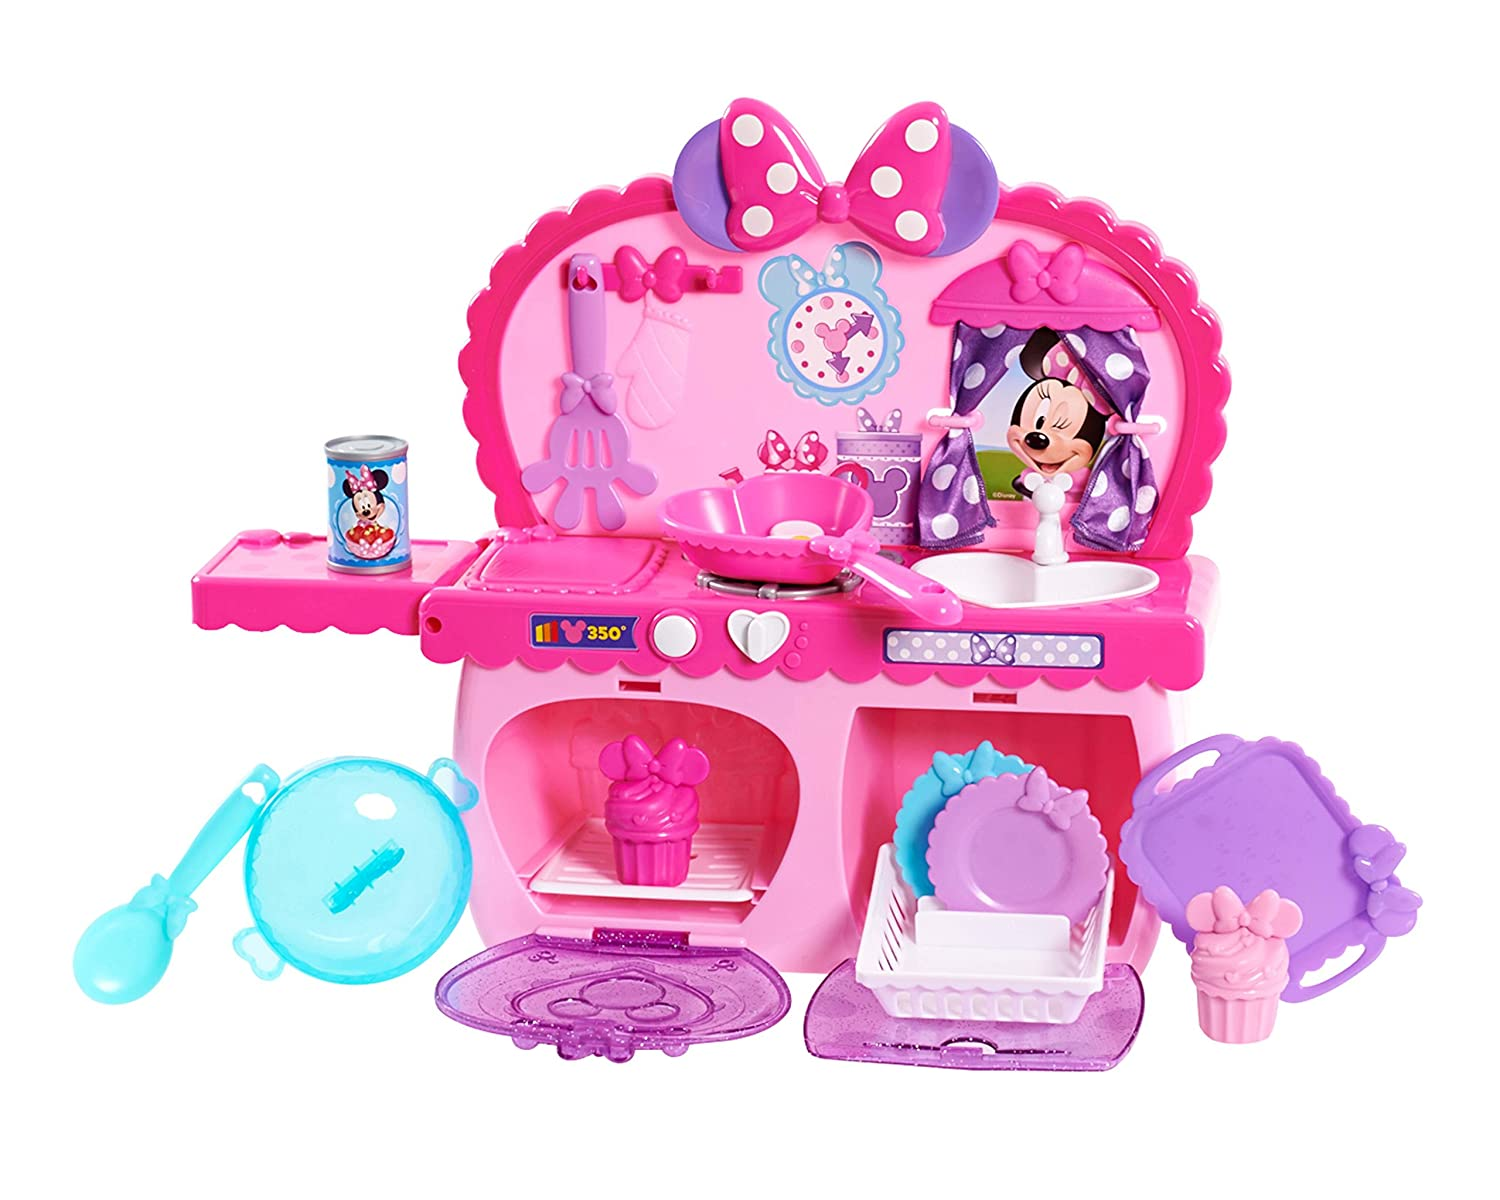 Minnie Mouse toy Kitchen